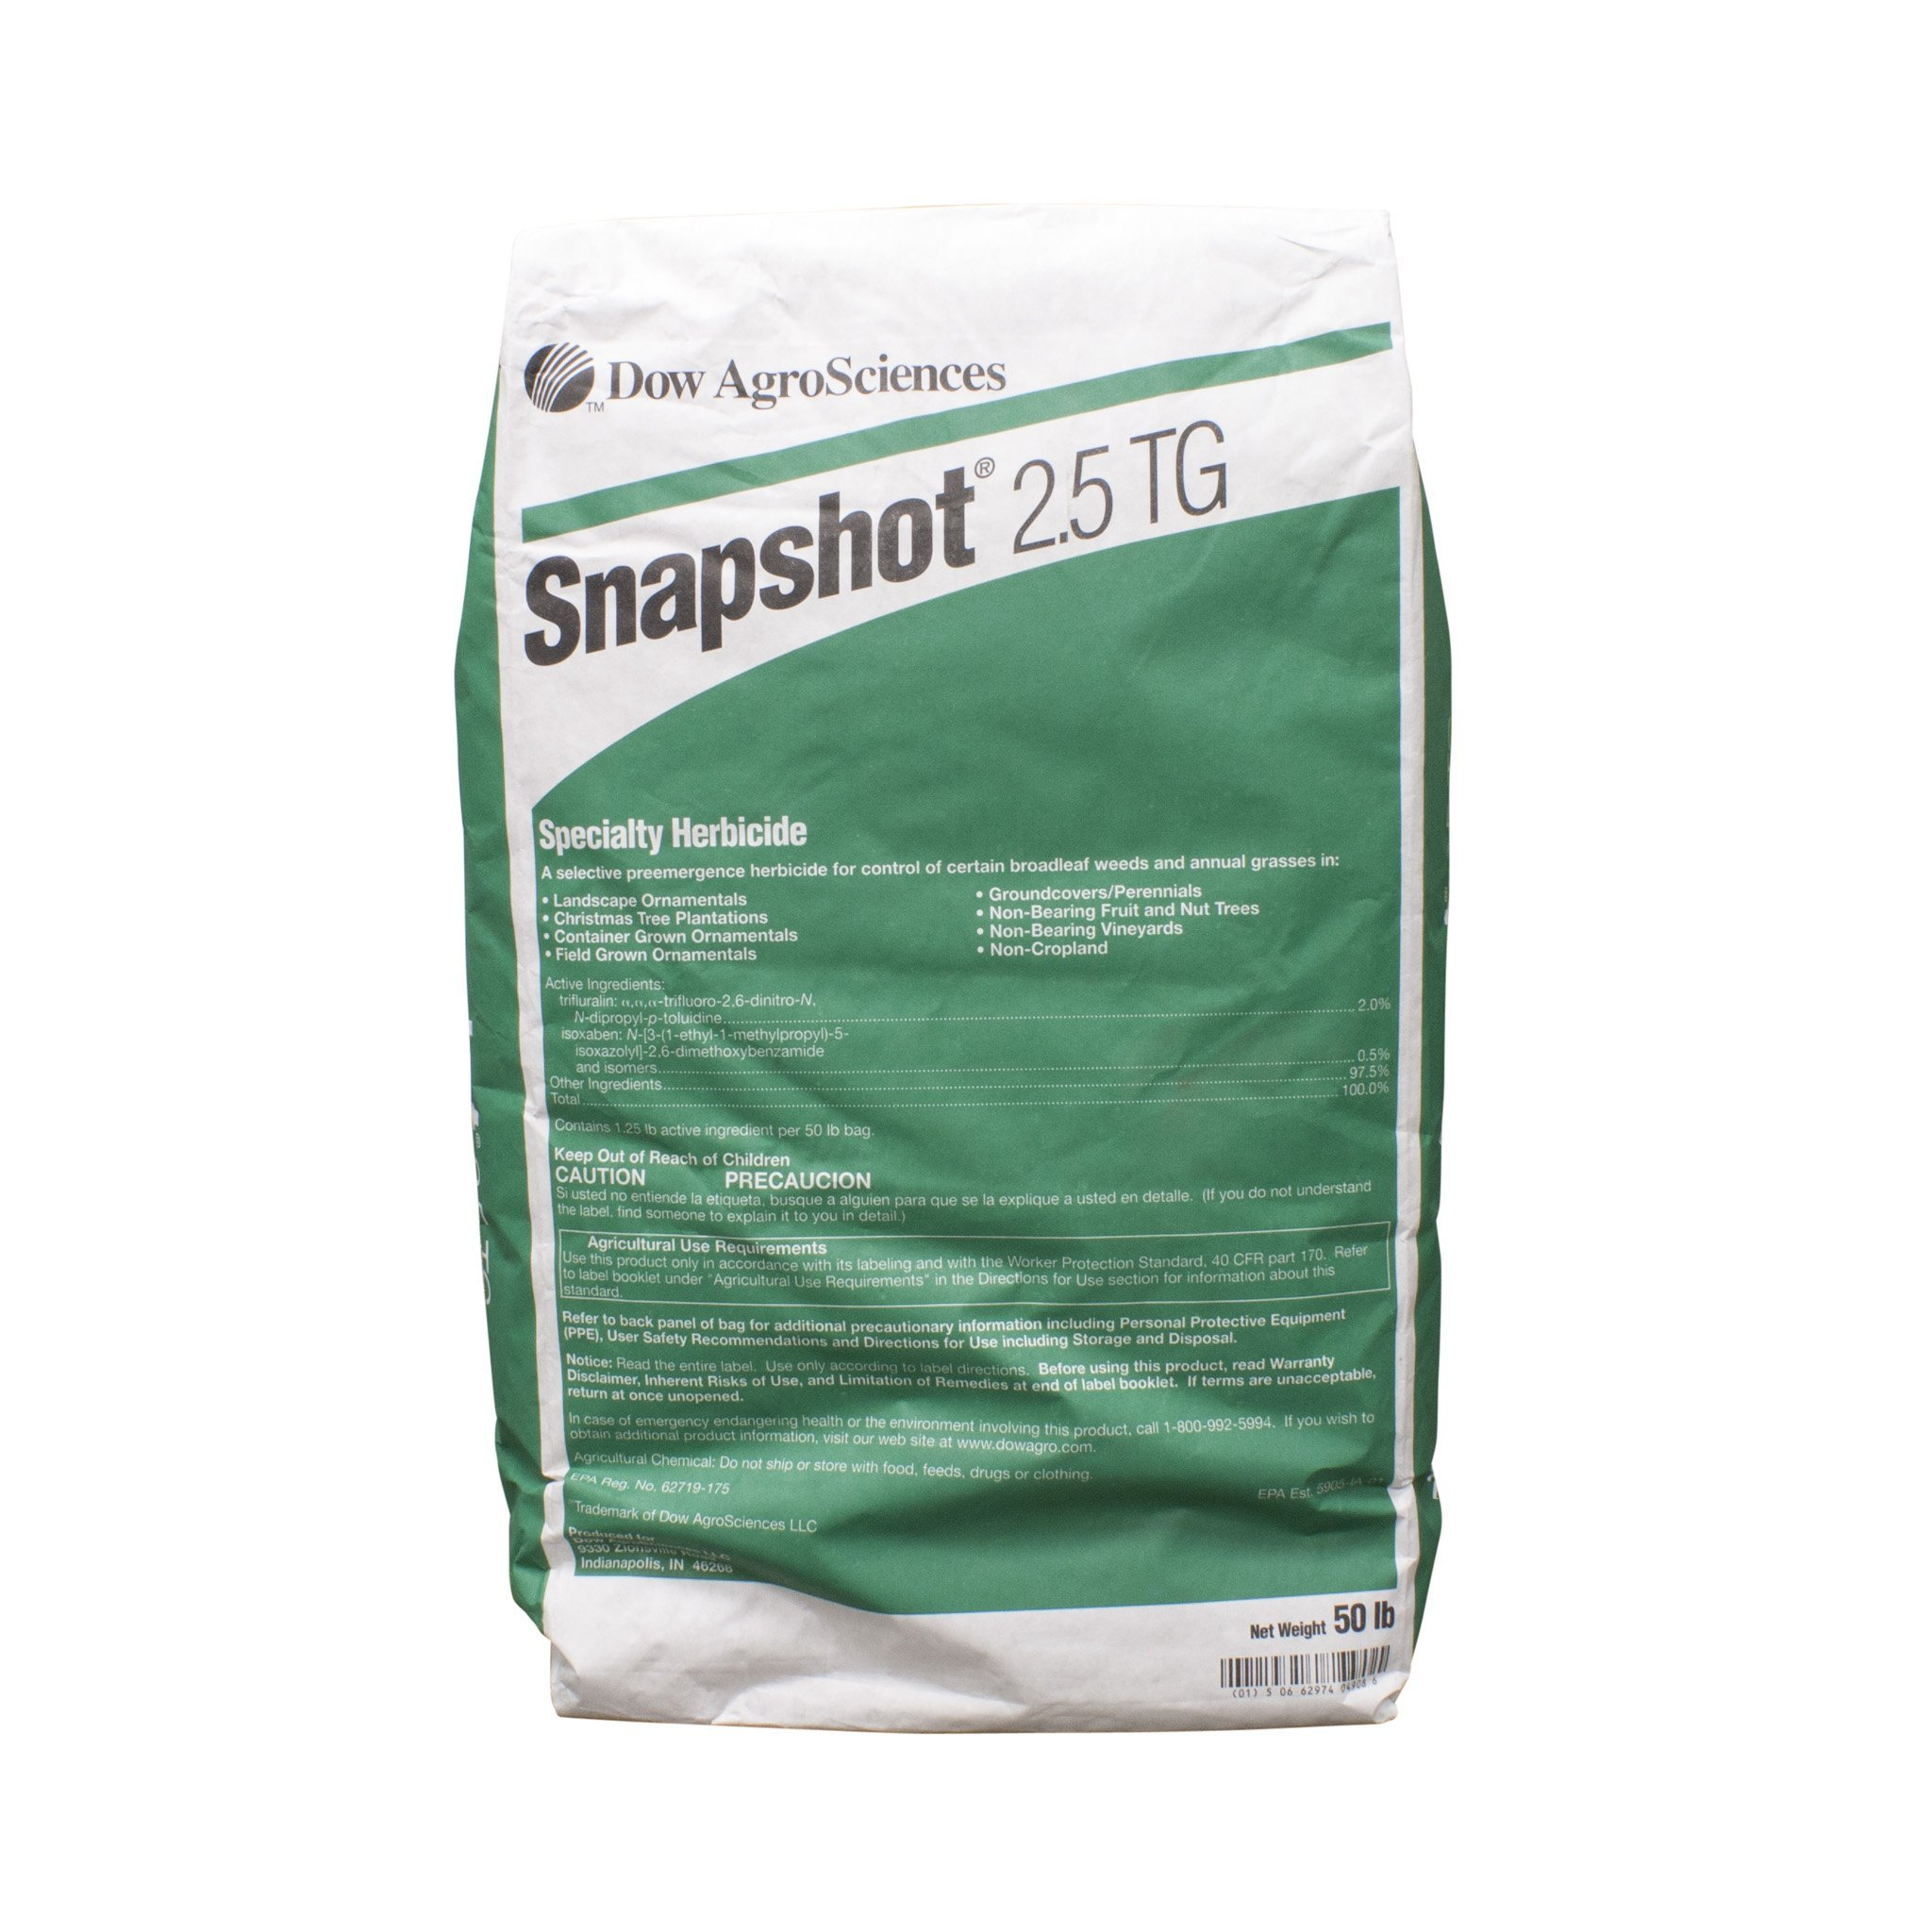 Snapshot - 50 Pound bag - Mulch Bed Weed Inhibitor by Dow